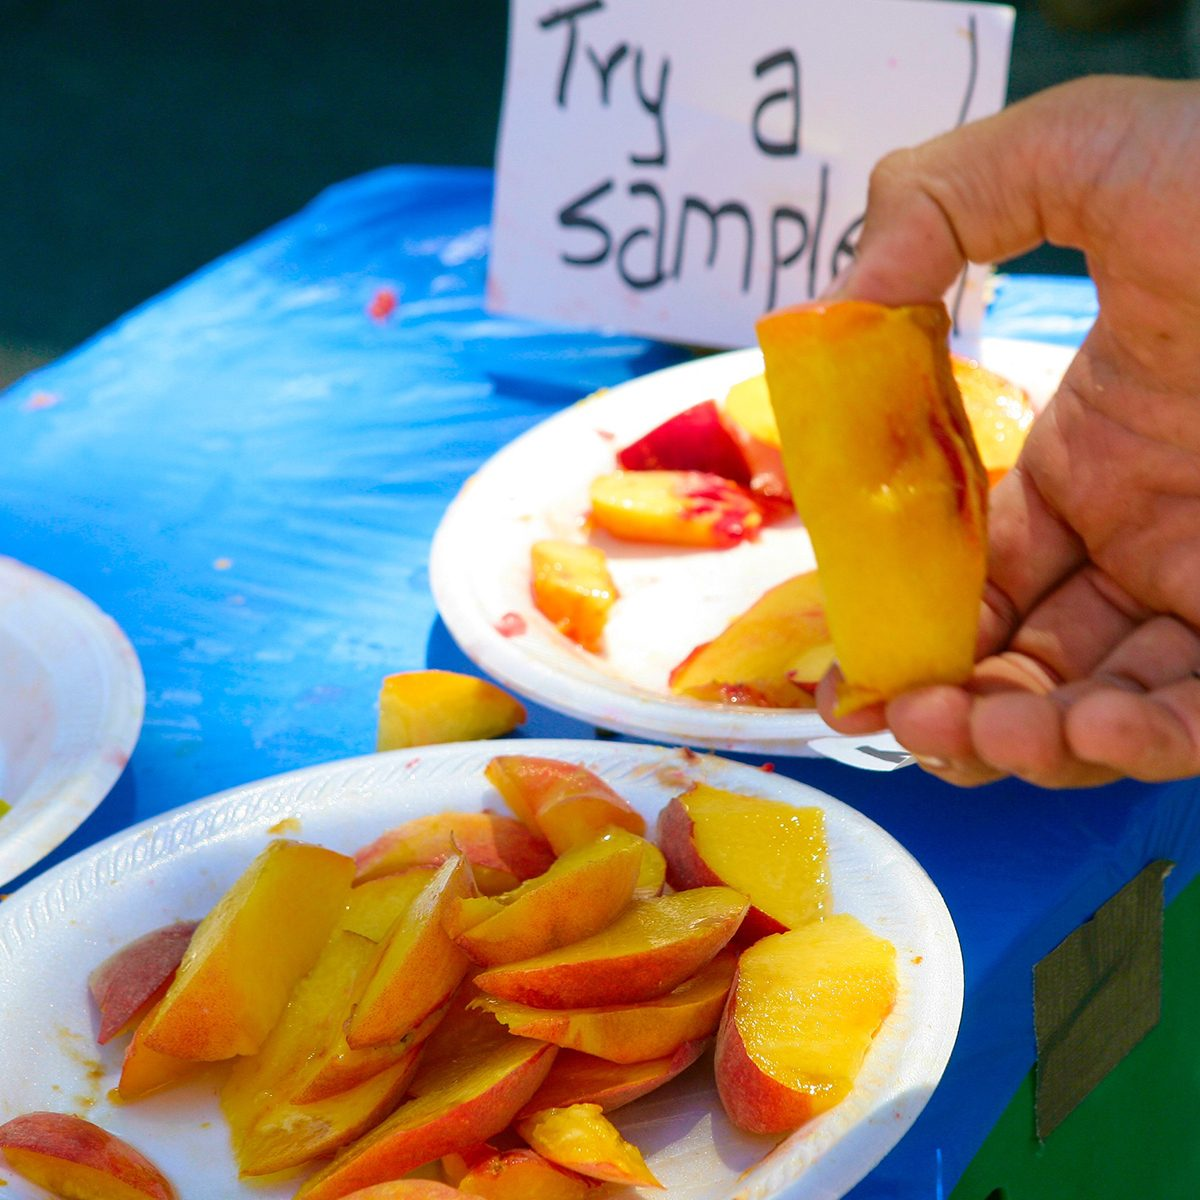 Farmer's market selling fresh, home-grown fruit, cutting samples for shoppers to try.